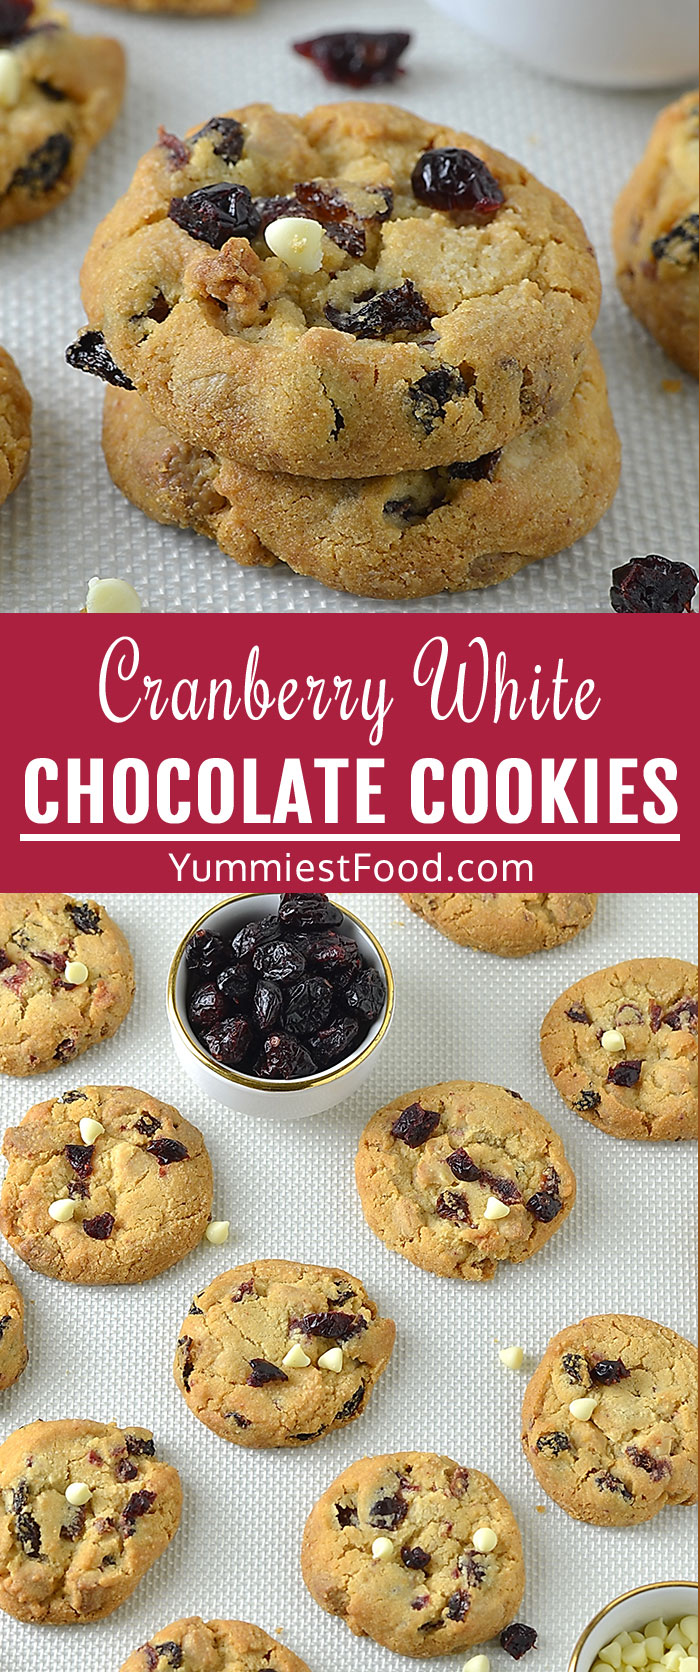 Cranberry White Chocolate Cookies is soft, tender and chewy, they are puffy and golden with lots of buttery vanilla flavor and studded with tart cranberries and sweet white chocolate chips! #christmas #christmasrecipes #chocolate #desserts #dessertrecipes #cookies #easycookies